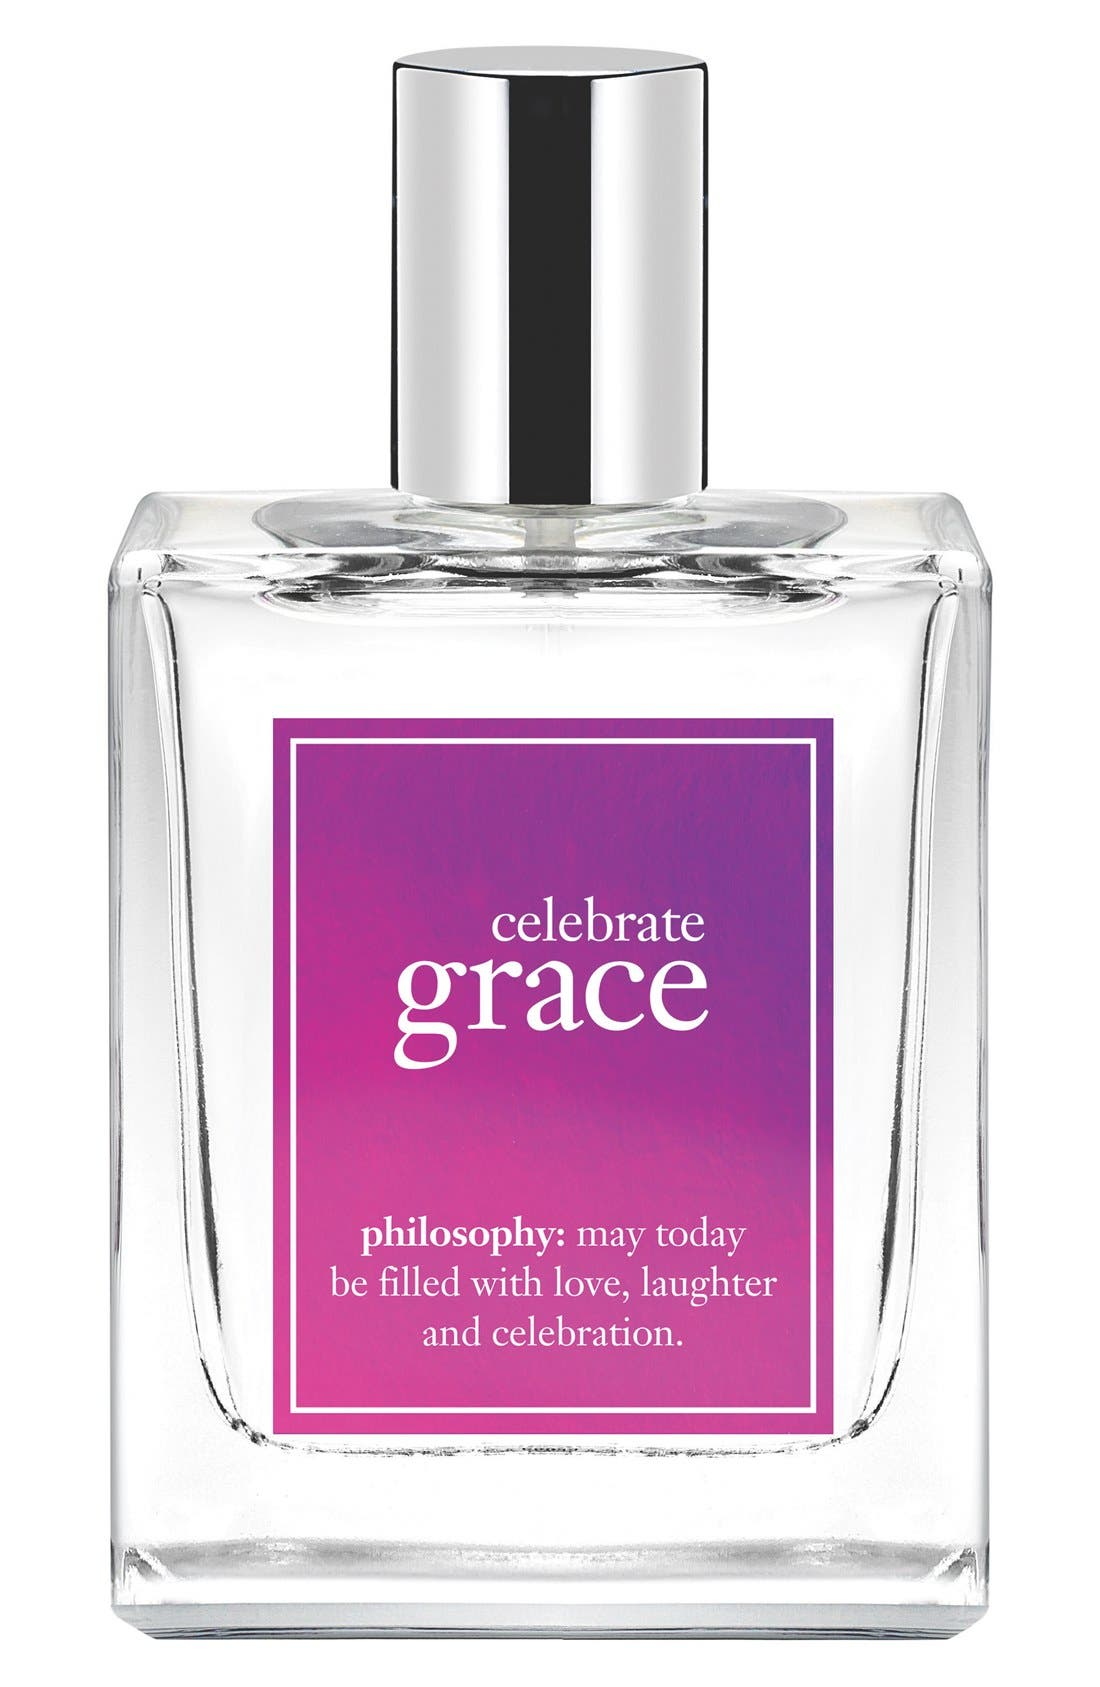 philosophy 'celebrate grace' eau de toilette (Limited Edition)